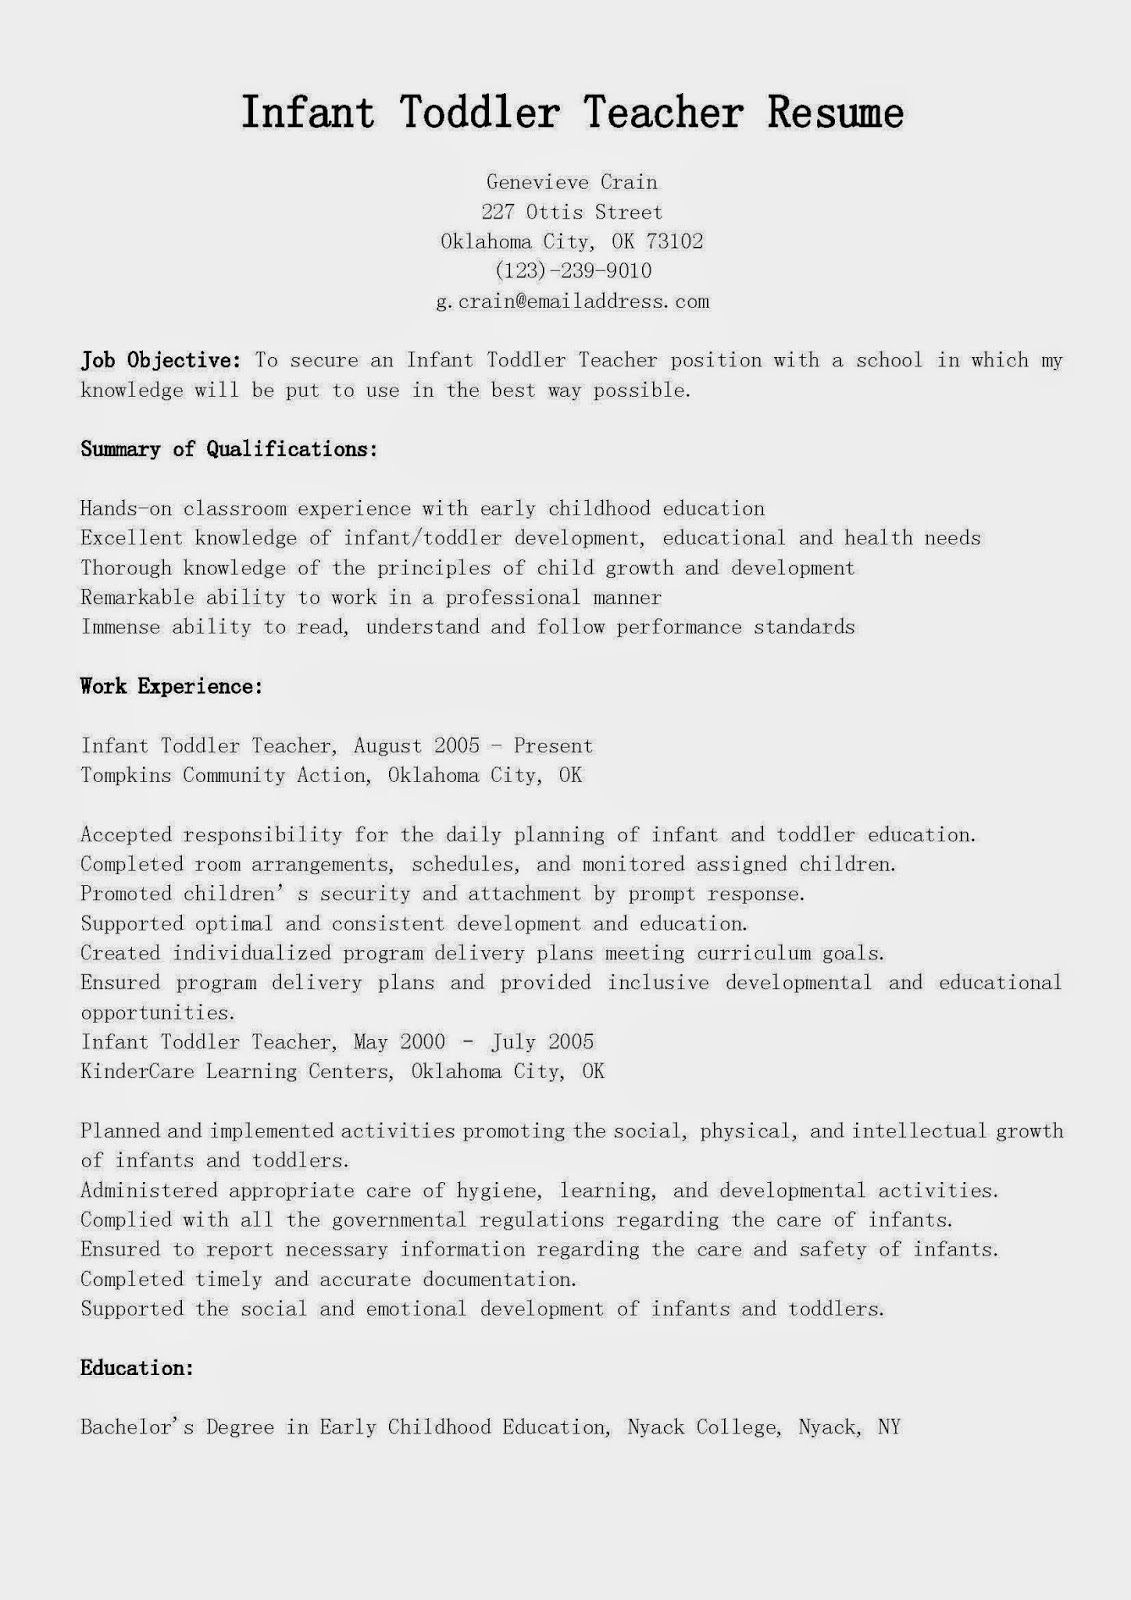 Lead Teacher Job Description Resume Resume Samples Infant Toddler Teacher Resume Sample